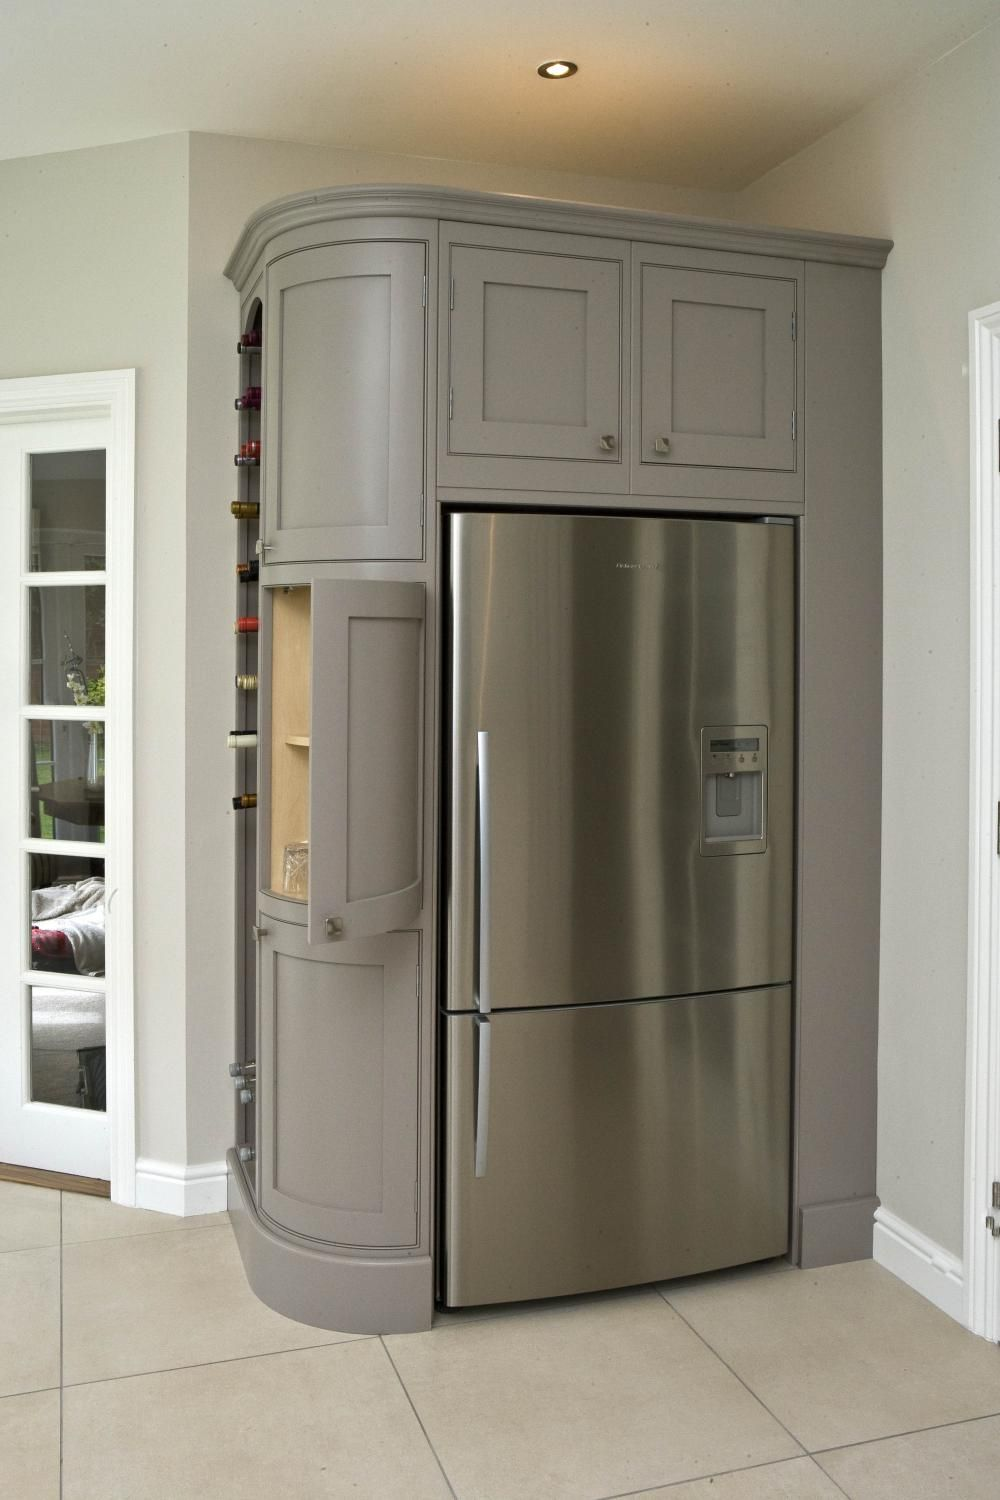 die besten 25 american fridge freezers ideen auf pinterest amerikanischer k hlschrank. Black Bedroom Furniture Sets. Home Design Ideas